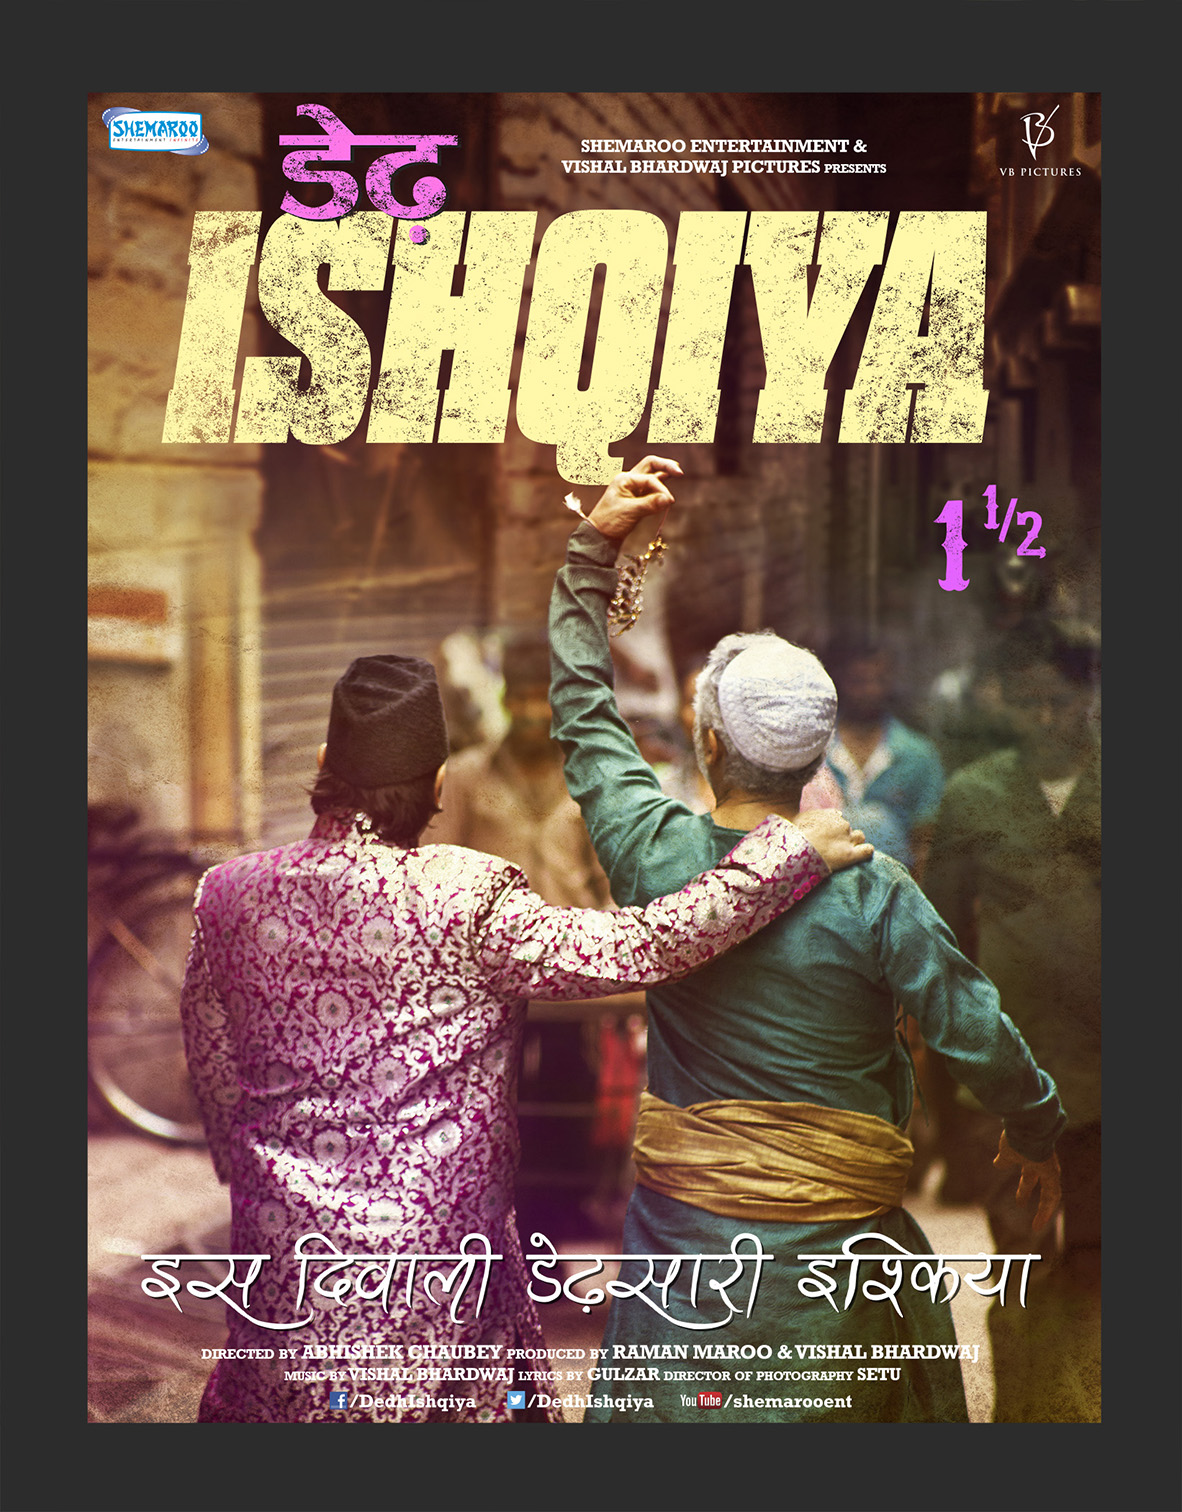 Ishqiya V 19 Digital Two Posters Dedh Ishqiya!